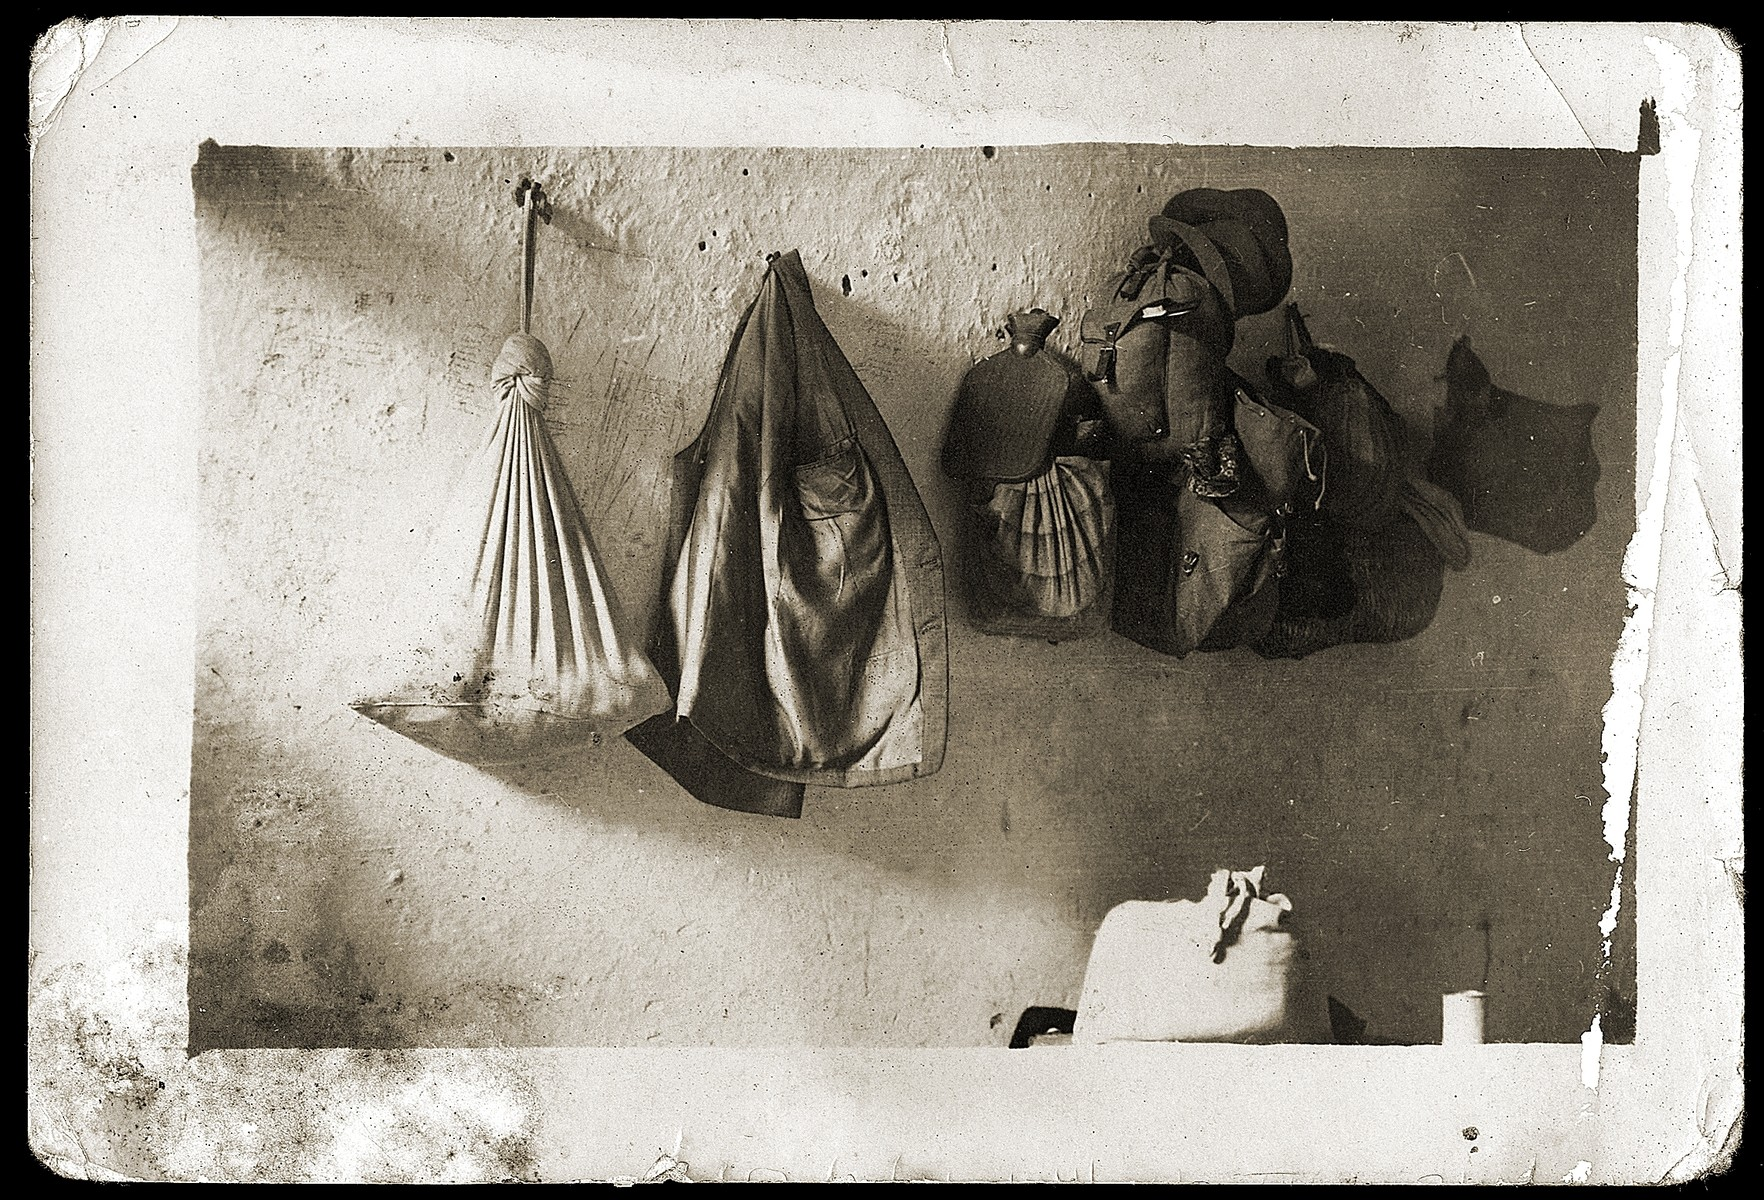 A few belongings of the Mandil family hang on hooks in the prison cell where they were detained for eight months by the Italians.